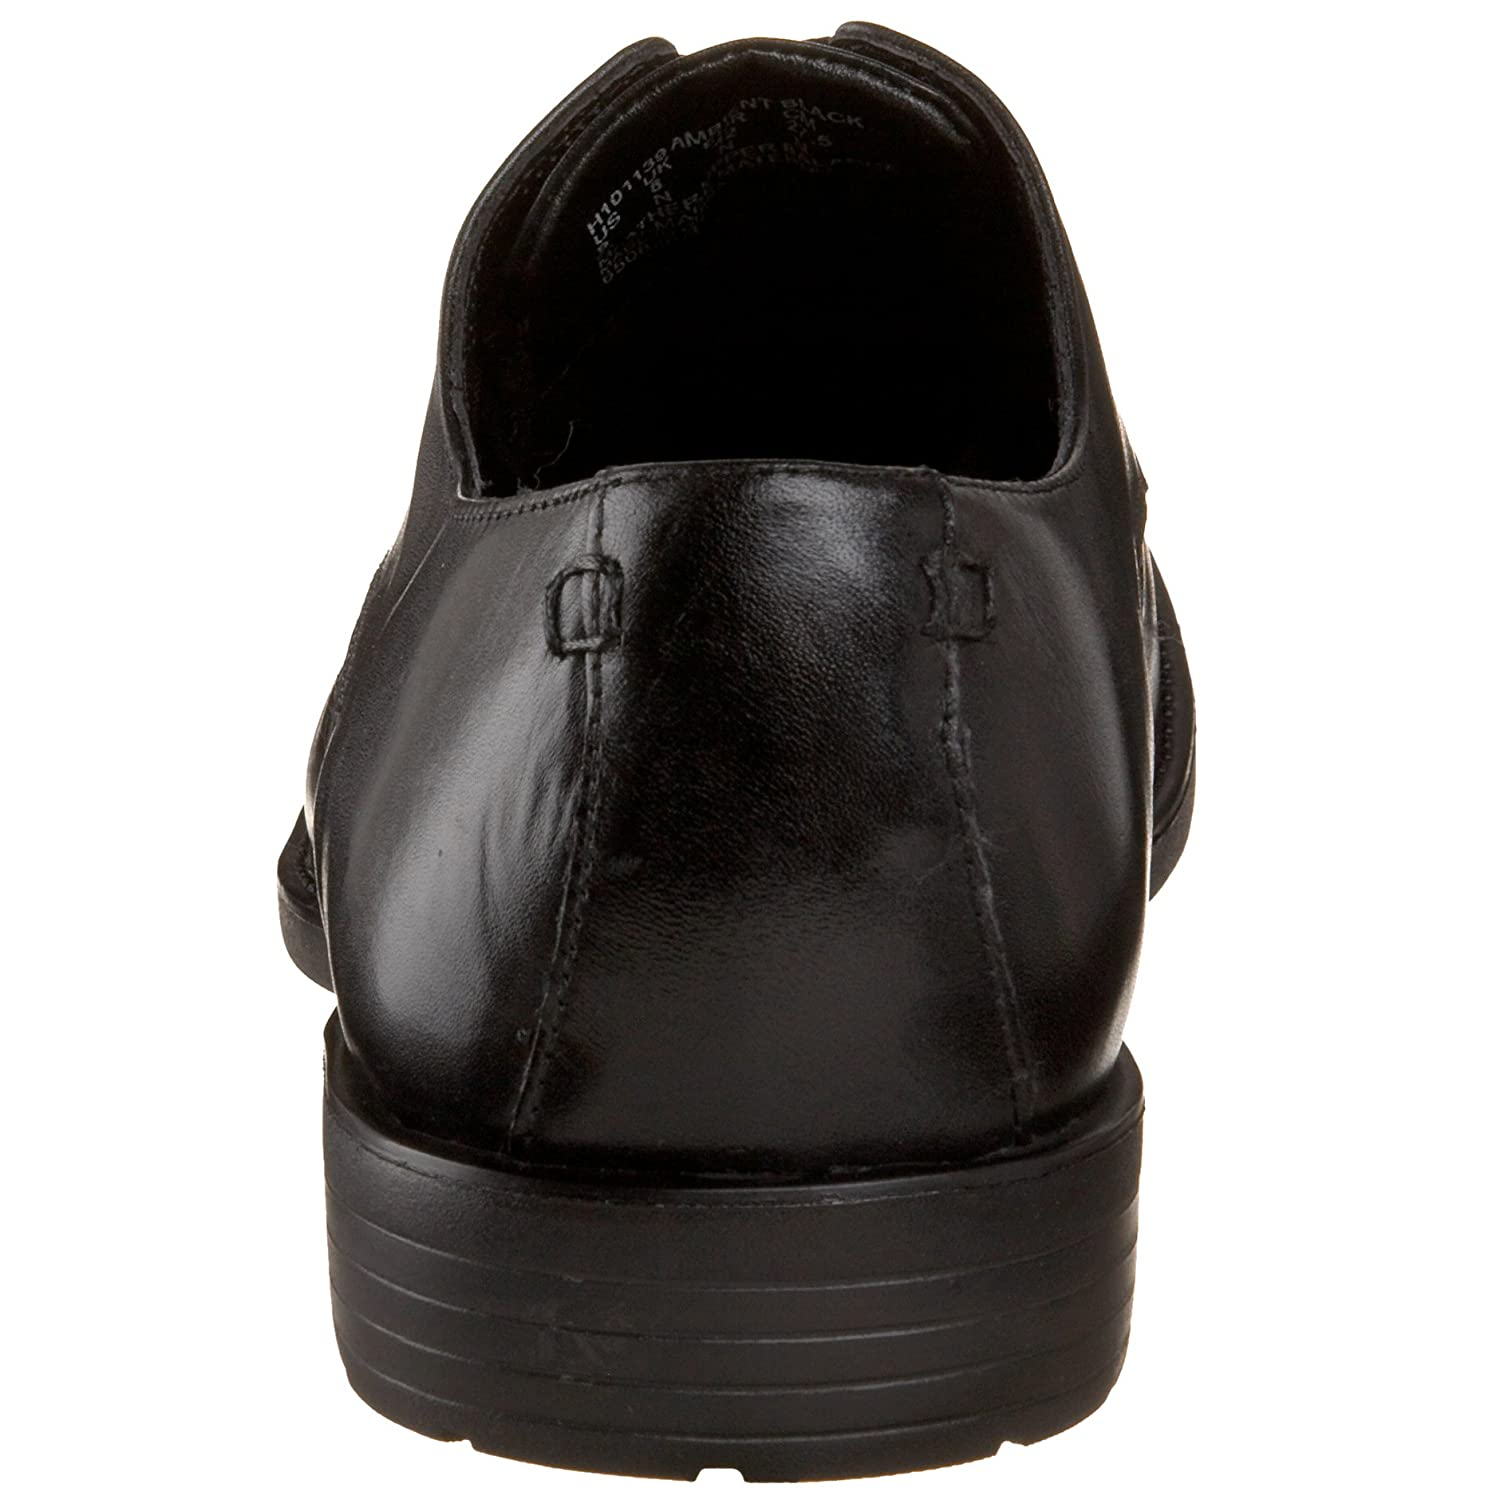 Hush Puppies Mens Ambient Oxford